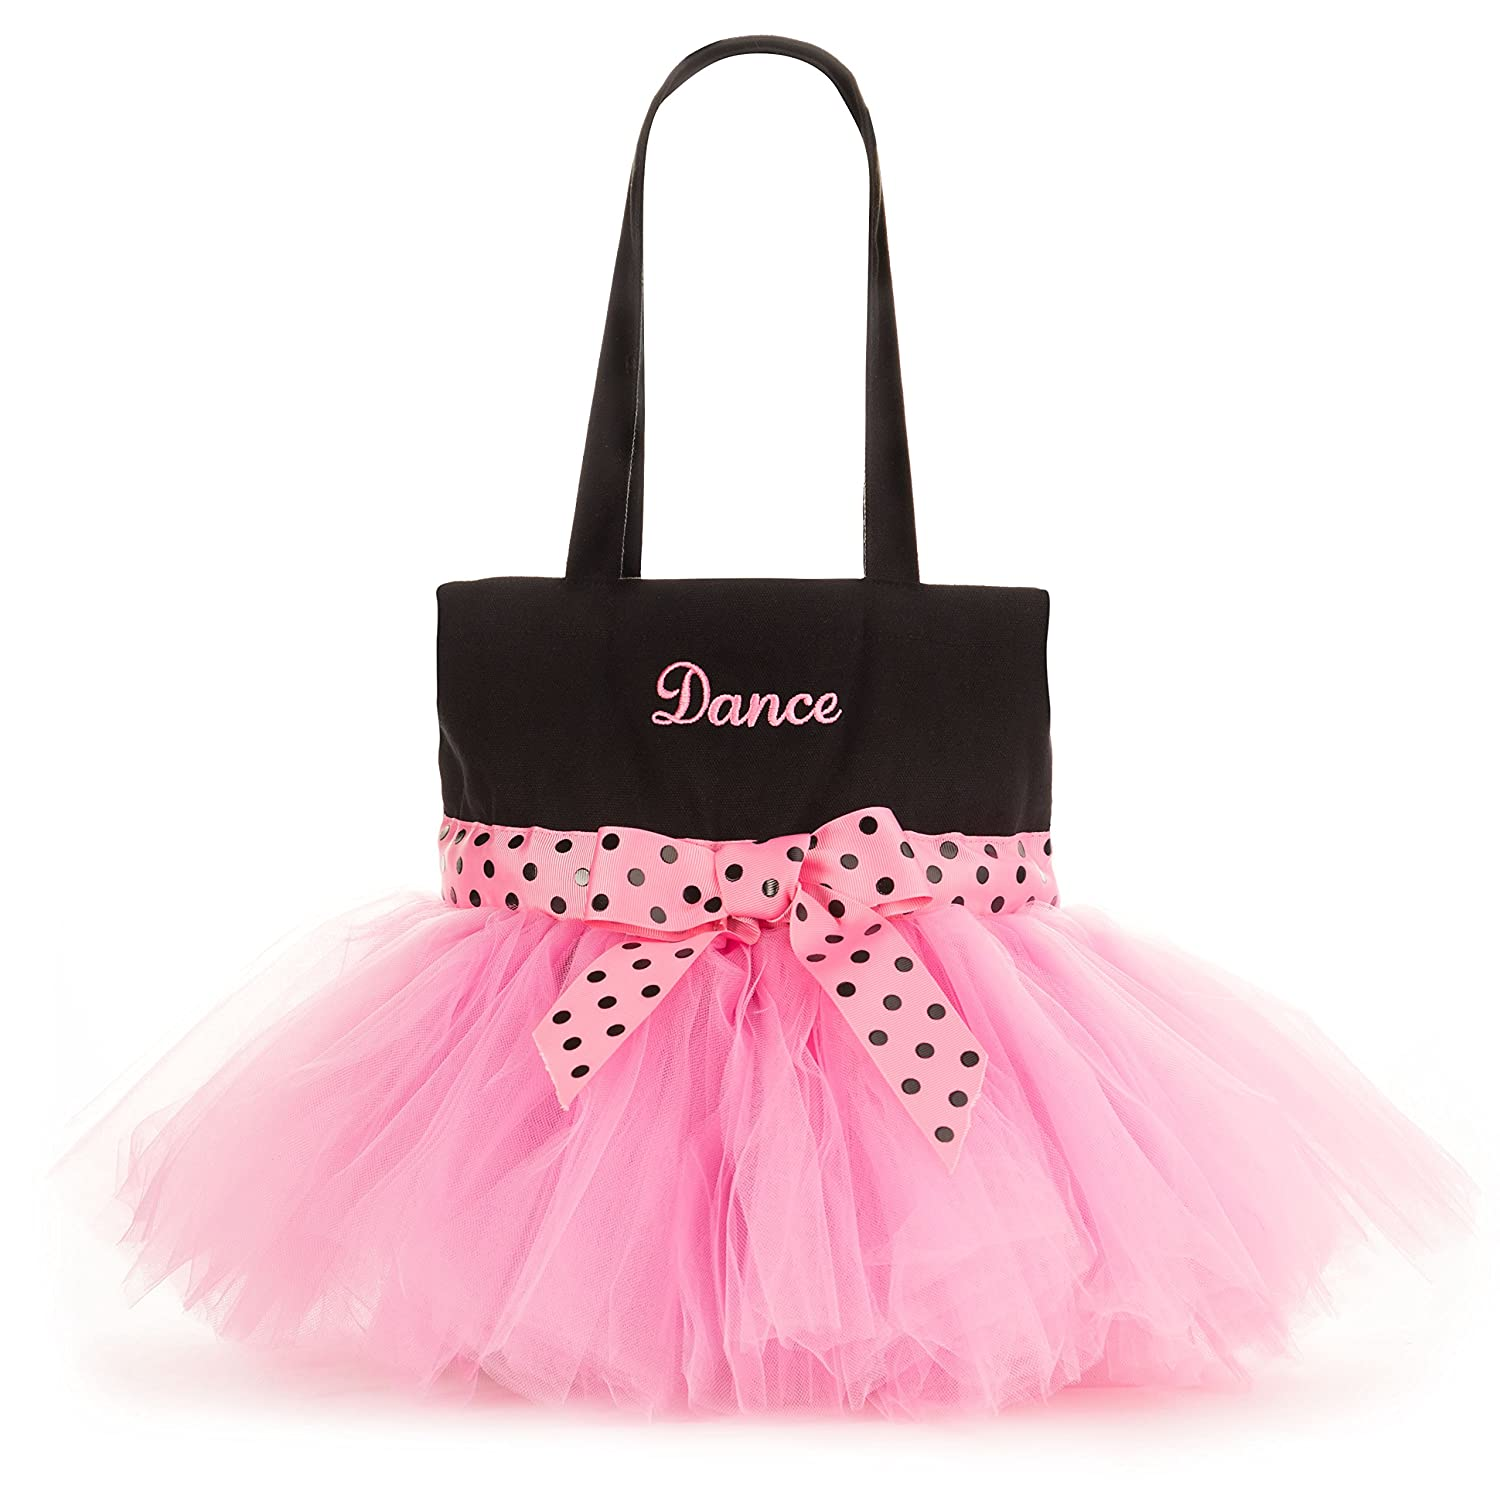 Amazon.com   Pardao Cute Dance Bag for Little Girls - Ballerina Tutu Bag  for Kids - Small Ballet Shoe Tote   Sports   Outdoors 05d3abf21ce9